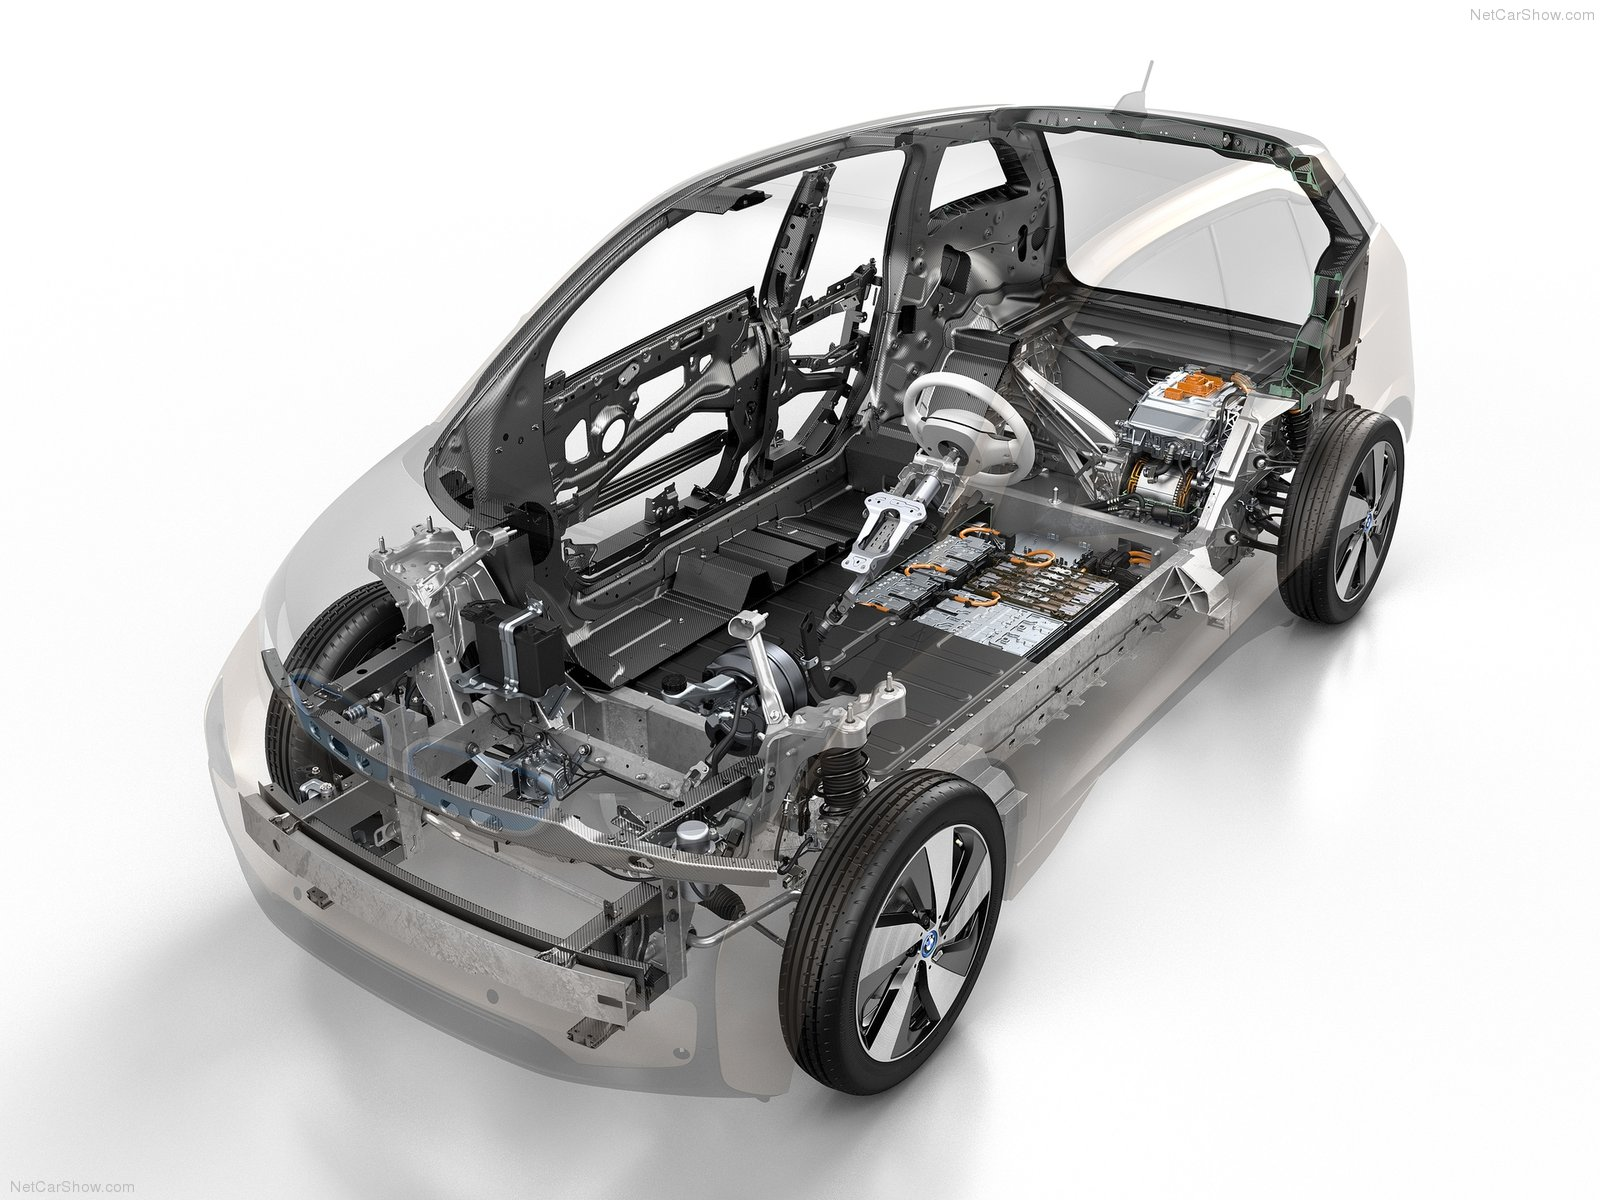 BMW-i3_2014_1600x1200_wallpaper_cb